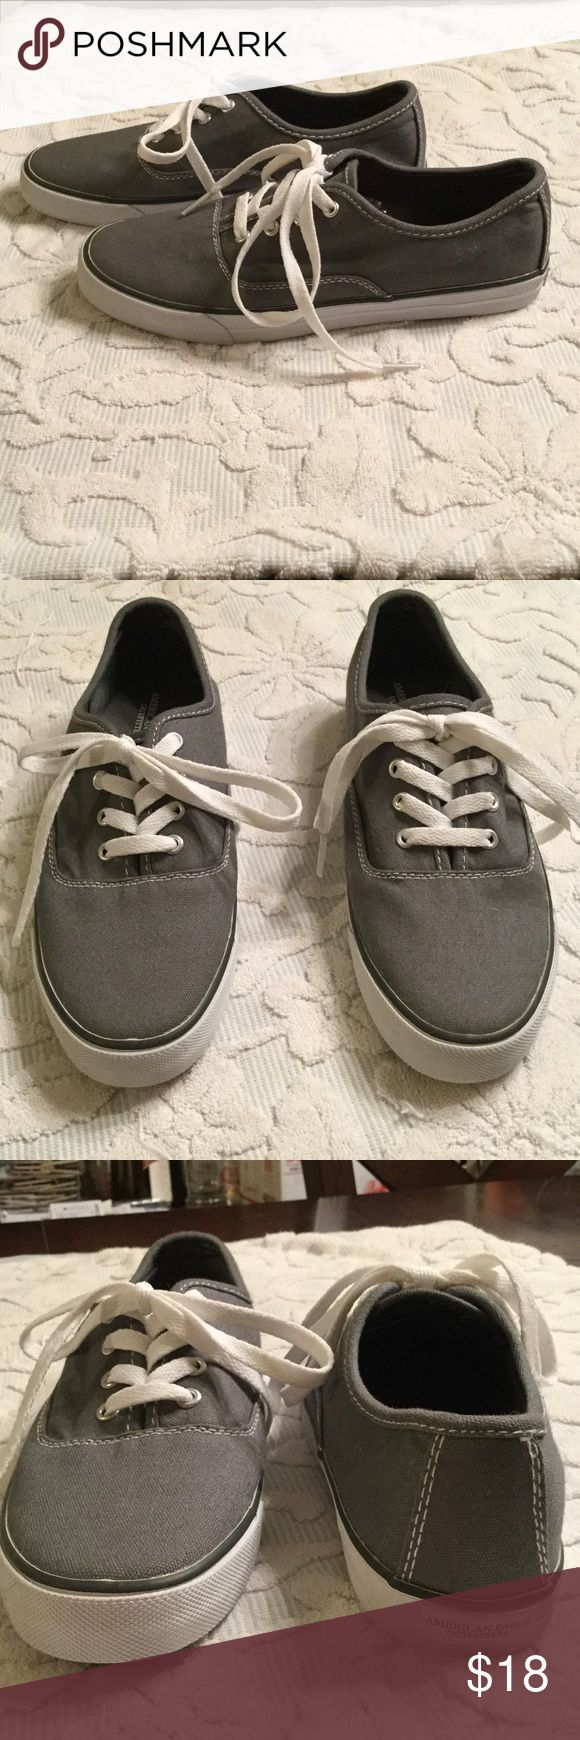 Gray flats American Eagle Brand new never worn . Size 8  AMERICAN EAGLE. Size is located on the inside of the tongue of the shoe. American Eagle Outfitters Shoes Flats & Loafers